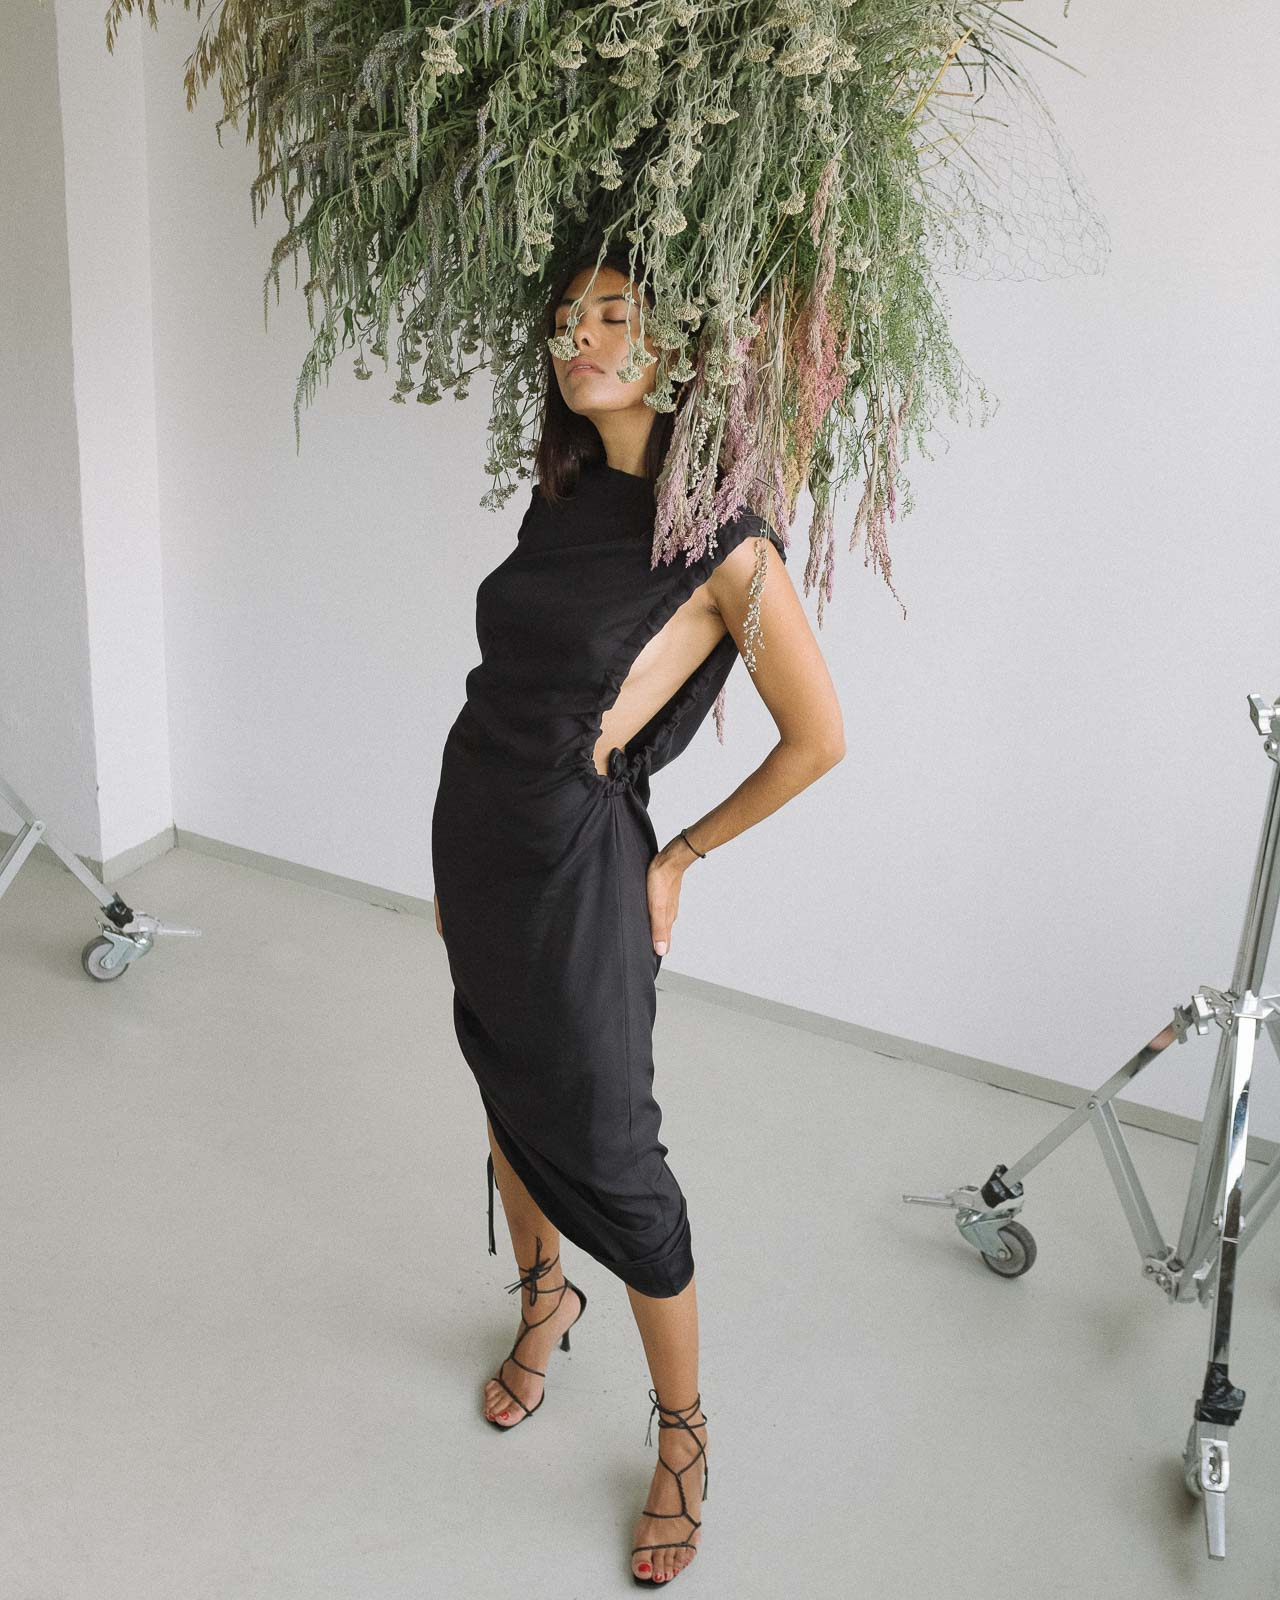 storm wears by malene birger black dress combined with gucci vintage sandals shot by marius knieling at studio230 flowers by studiolilo